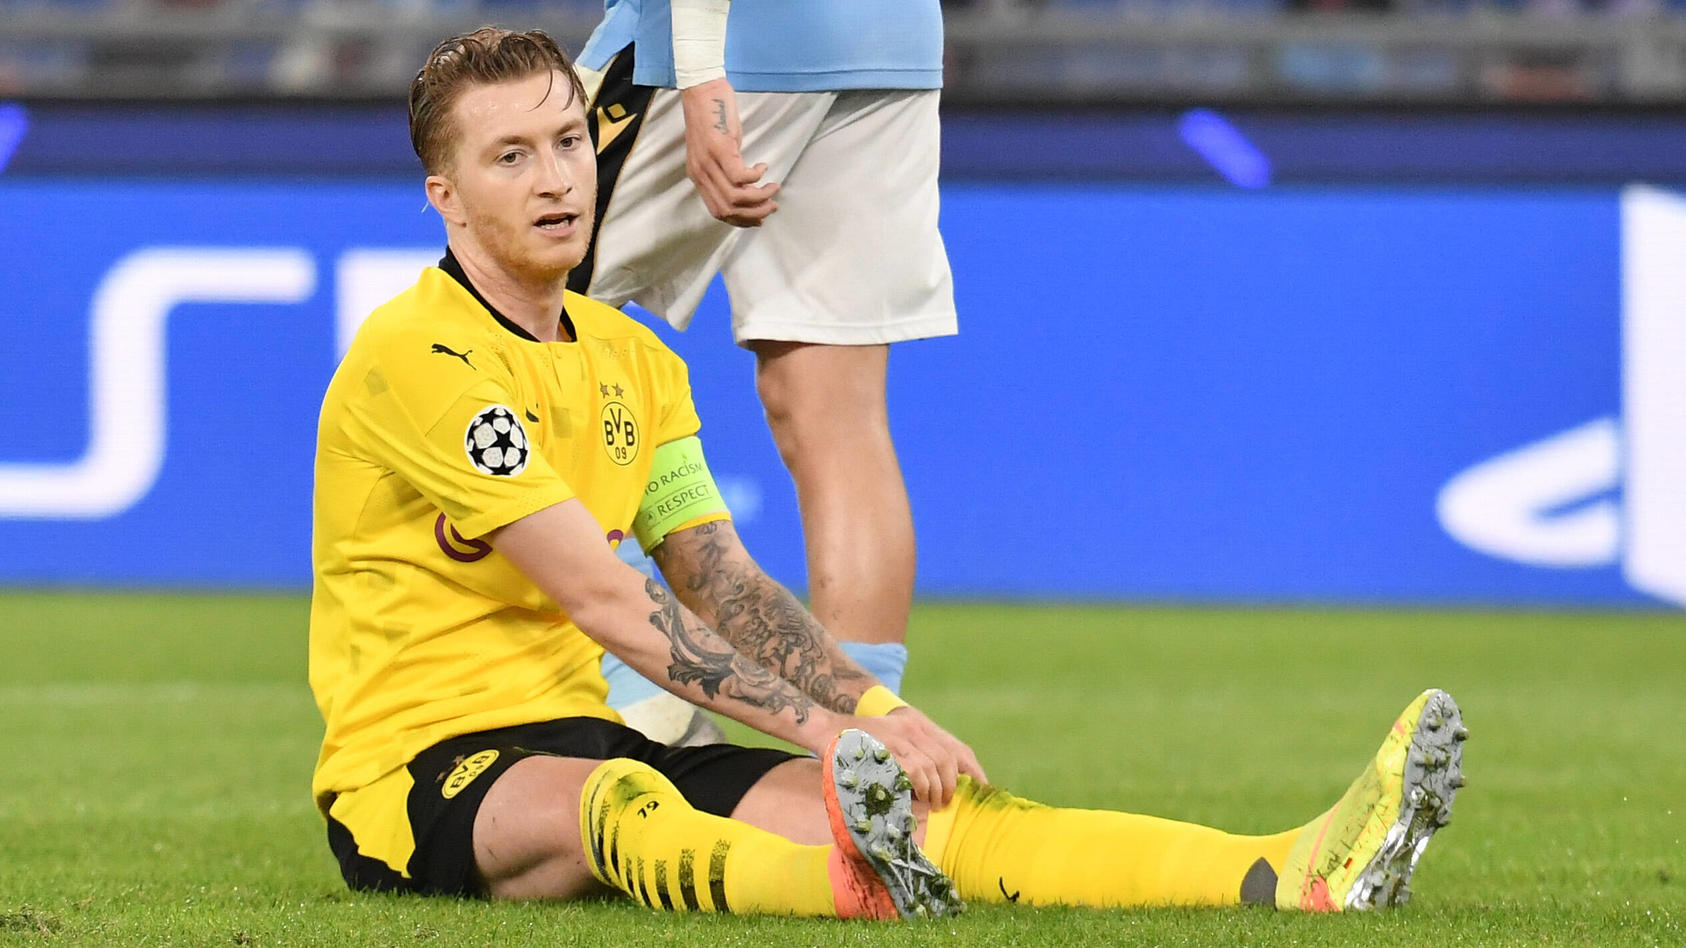 Marco Reus of Dortmund during the Champions League Group Stage F day 1 football match between SS Lazio and Borussia Dor